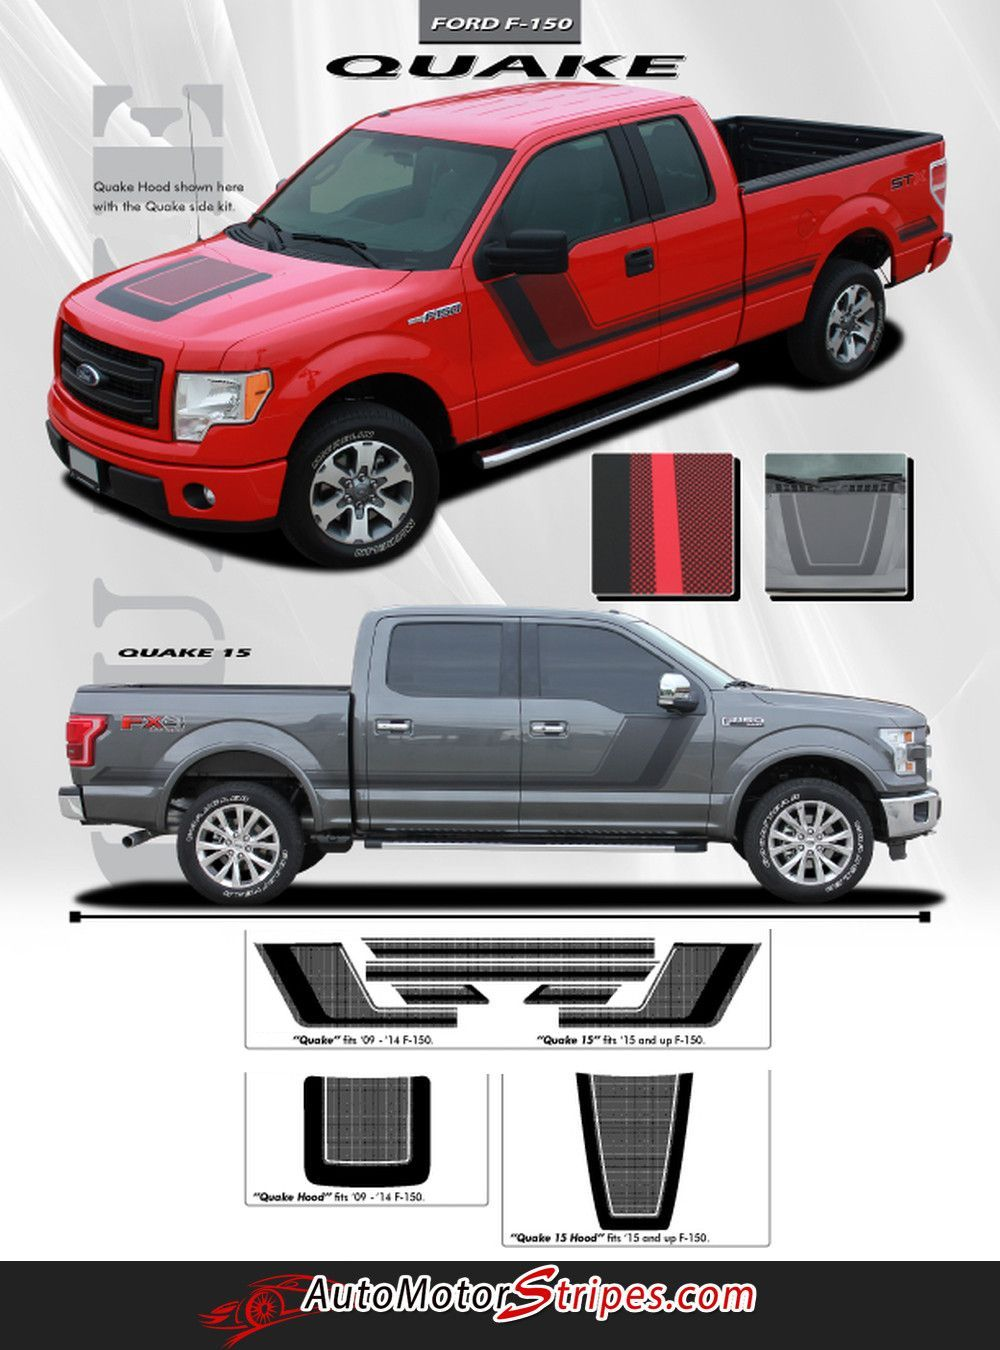 vehicle specific style ford f 150 series truck quake combo hood and sides tremor fx style vinyl graphic stripe decals year fitment 2009 2010 2011 2012 2013  [ 1000 x 1350 Pixel ]